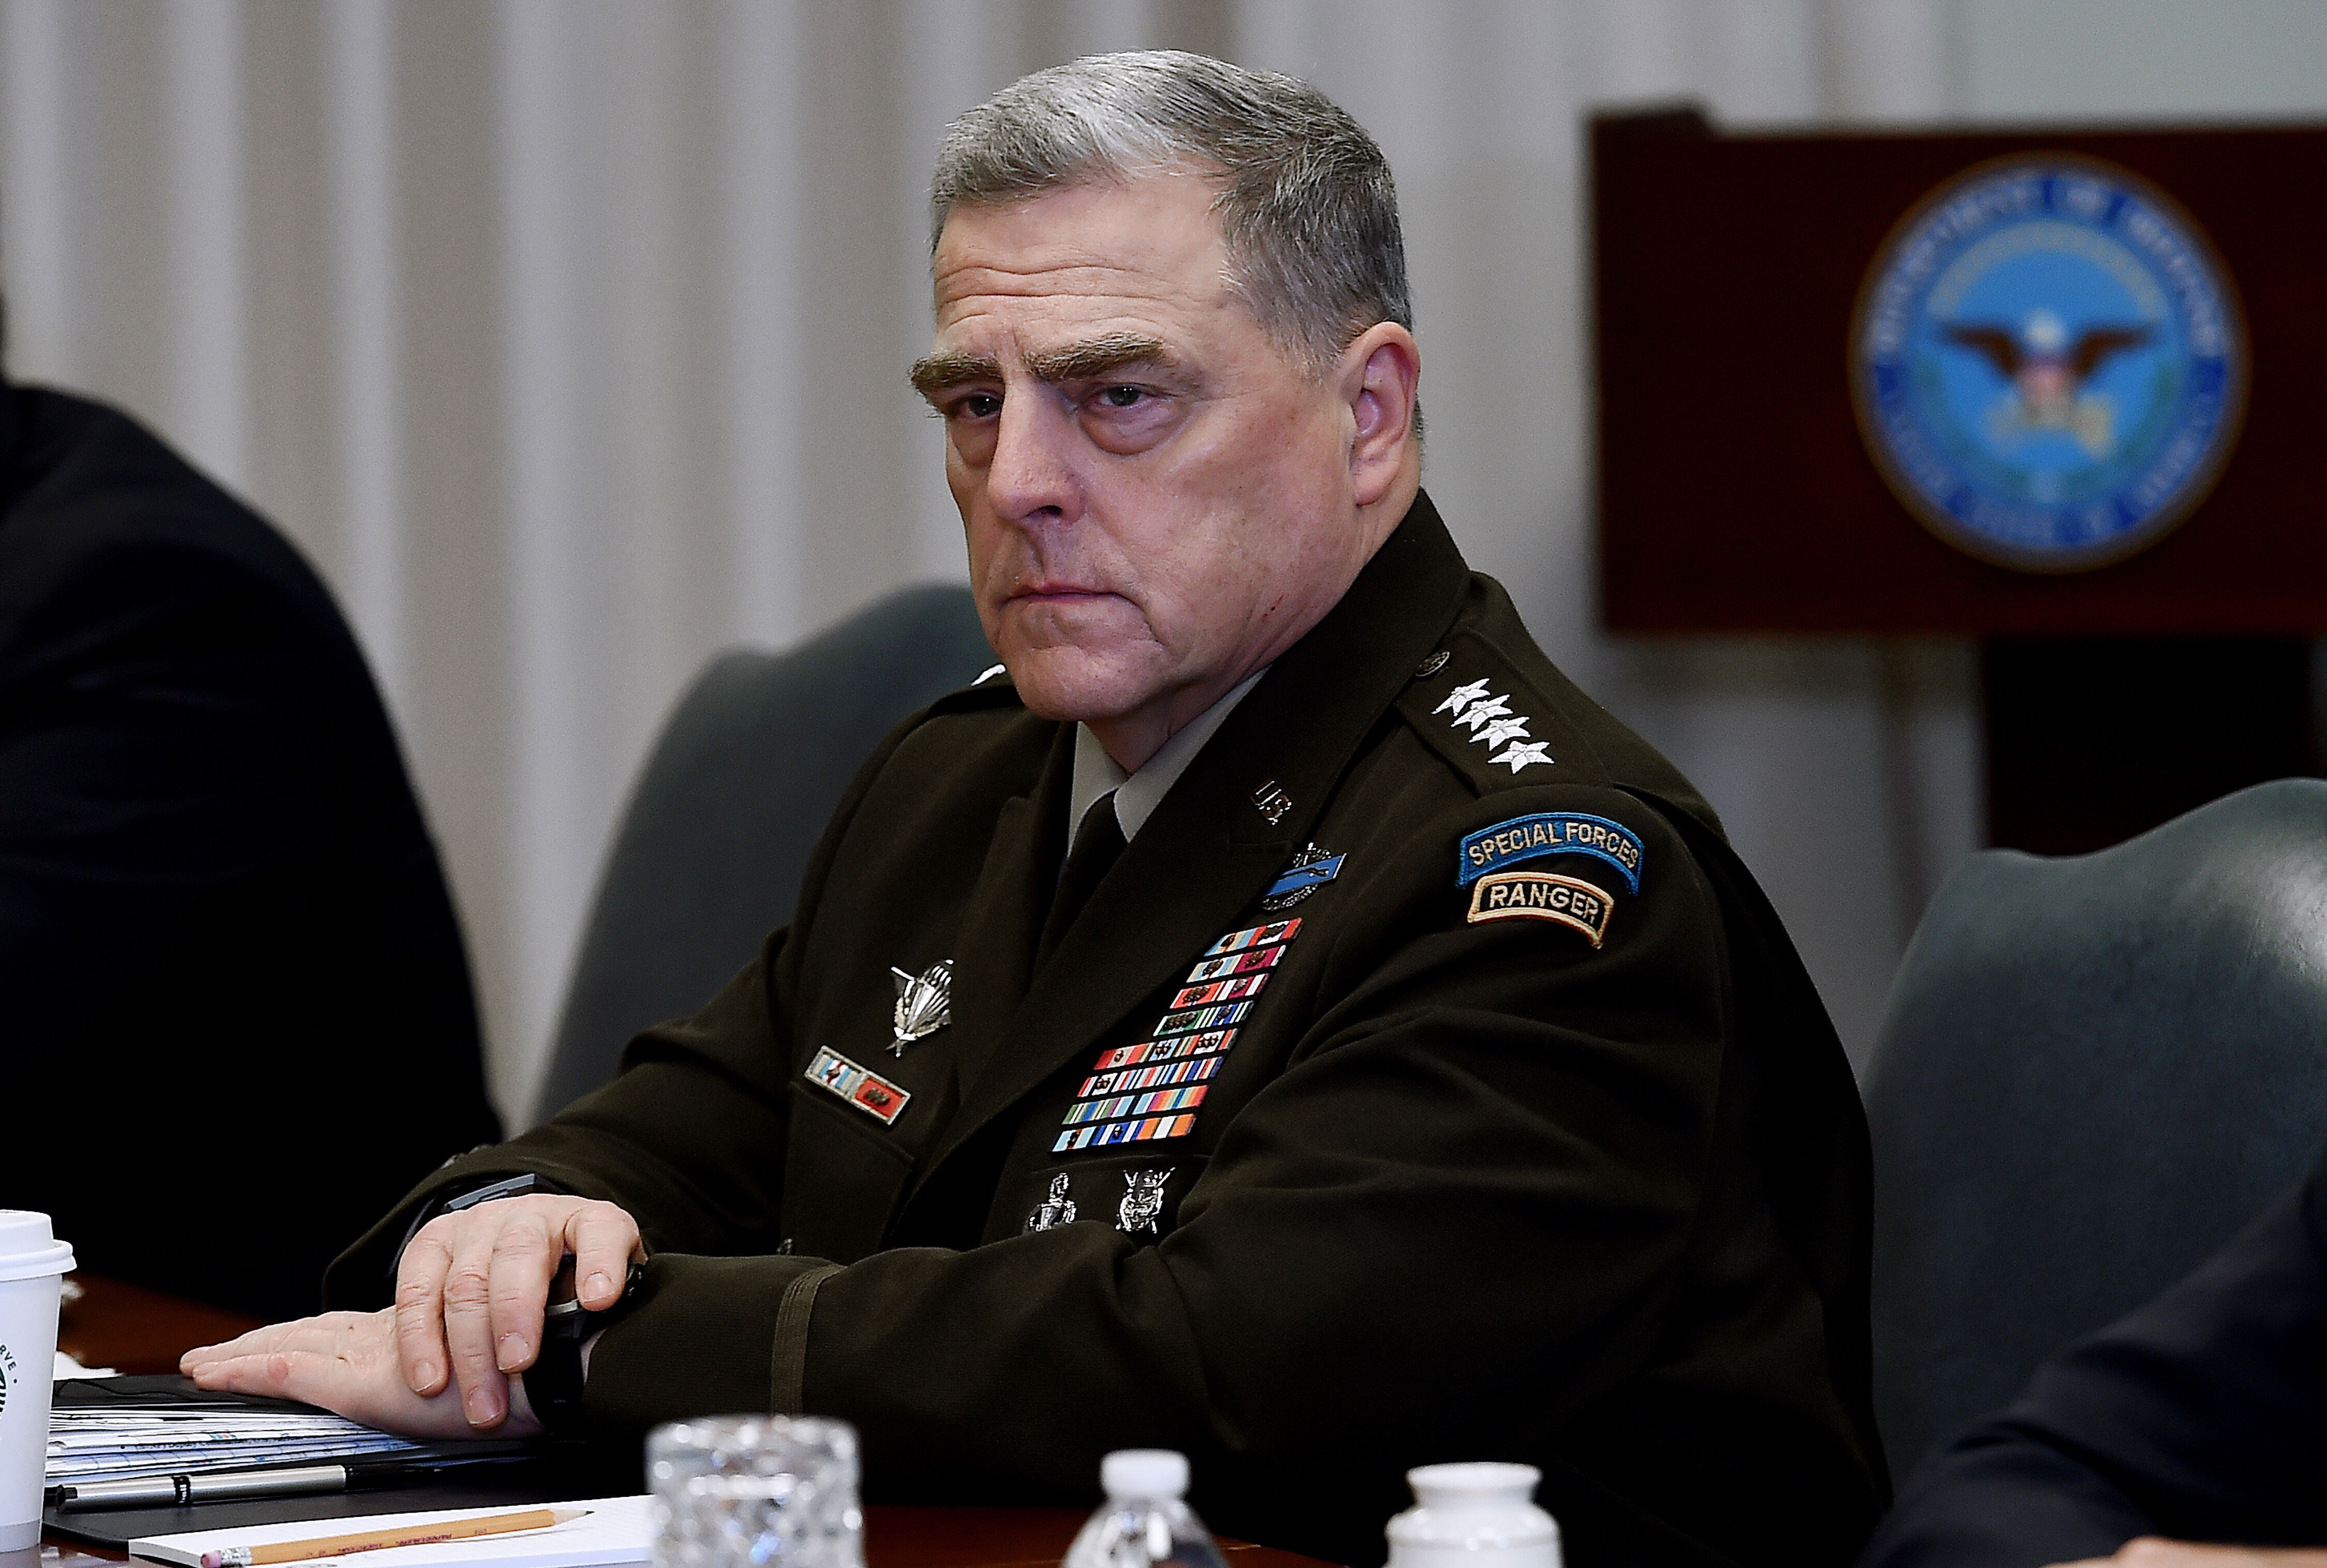 Read: Top US general's message to the military about Covid-19 vaccine